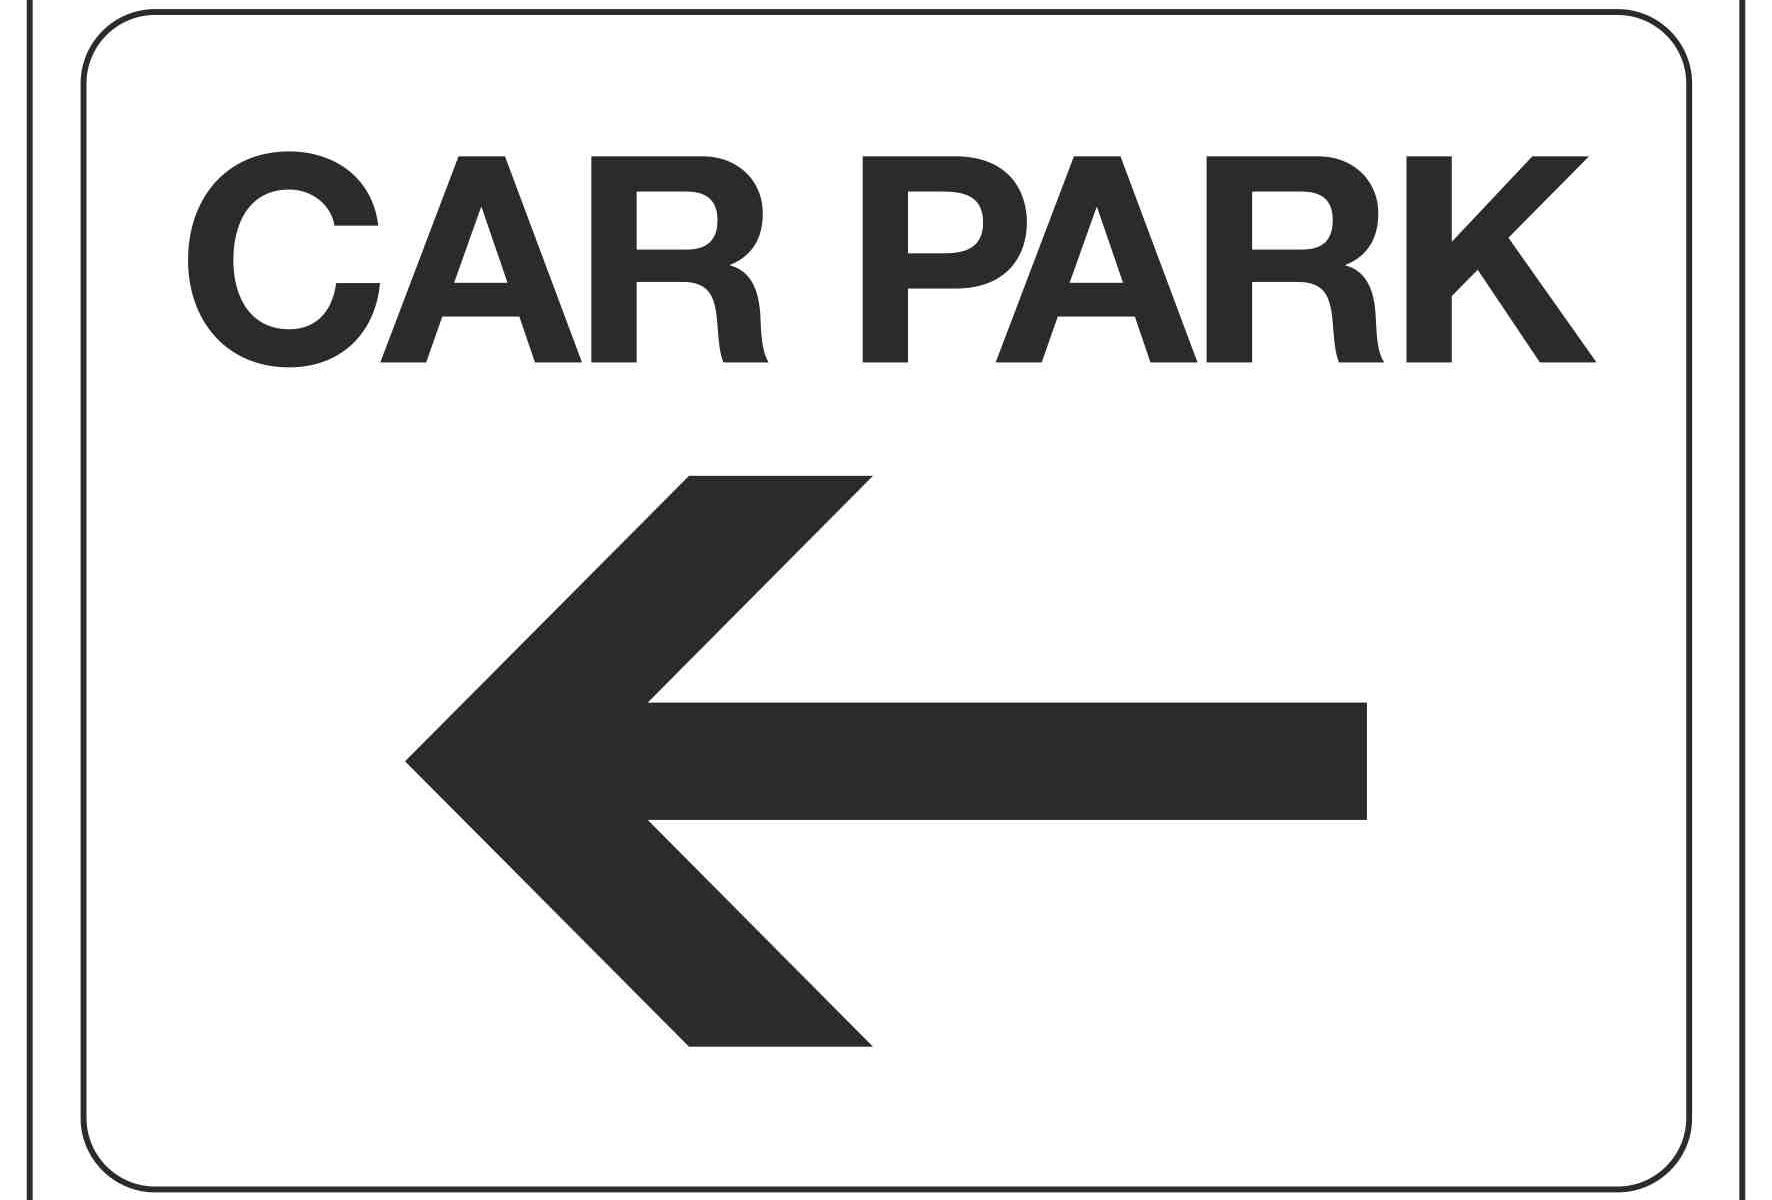 CAR PARK (Arrow pointing left)